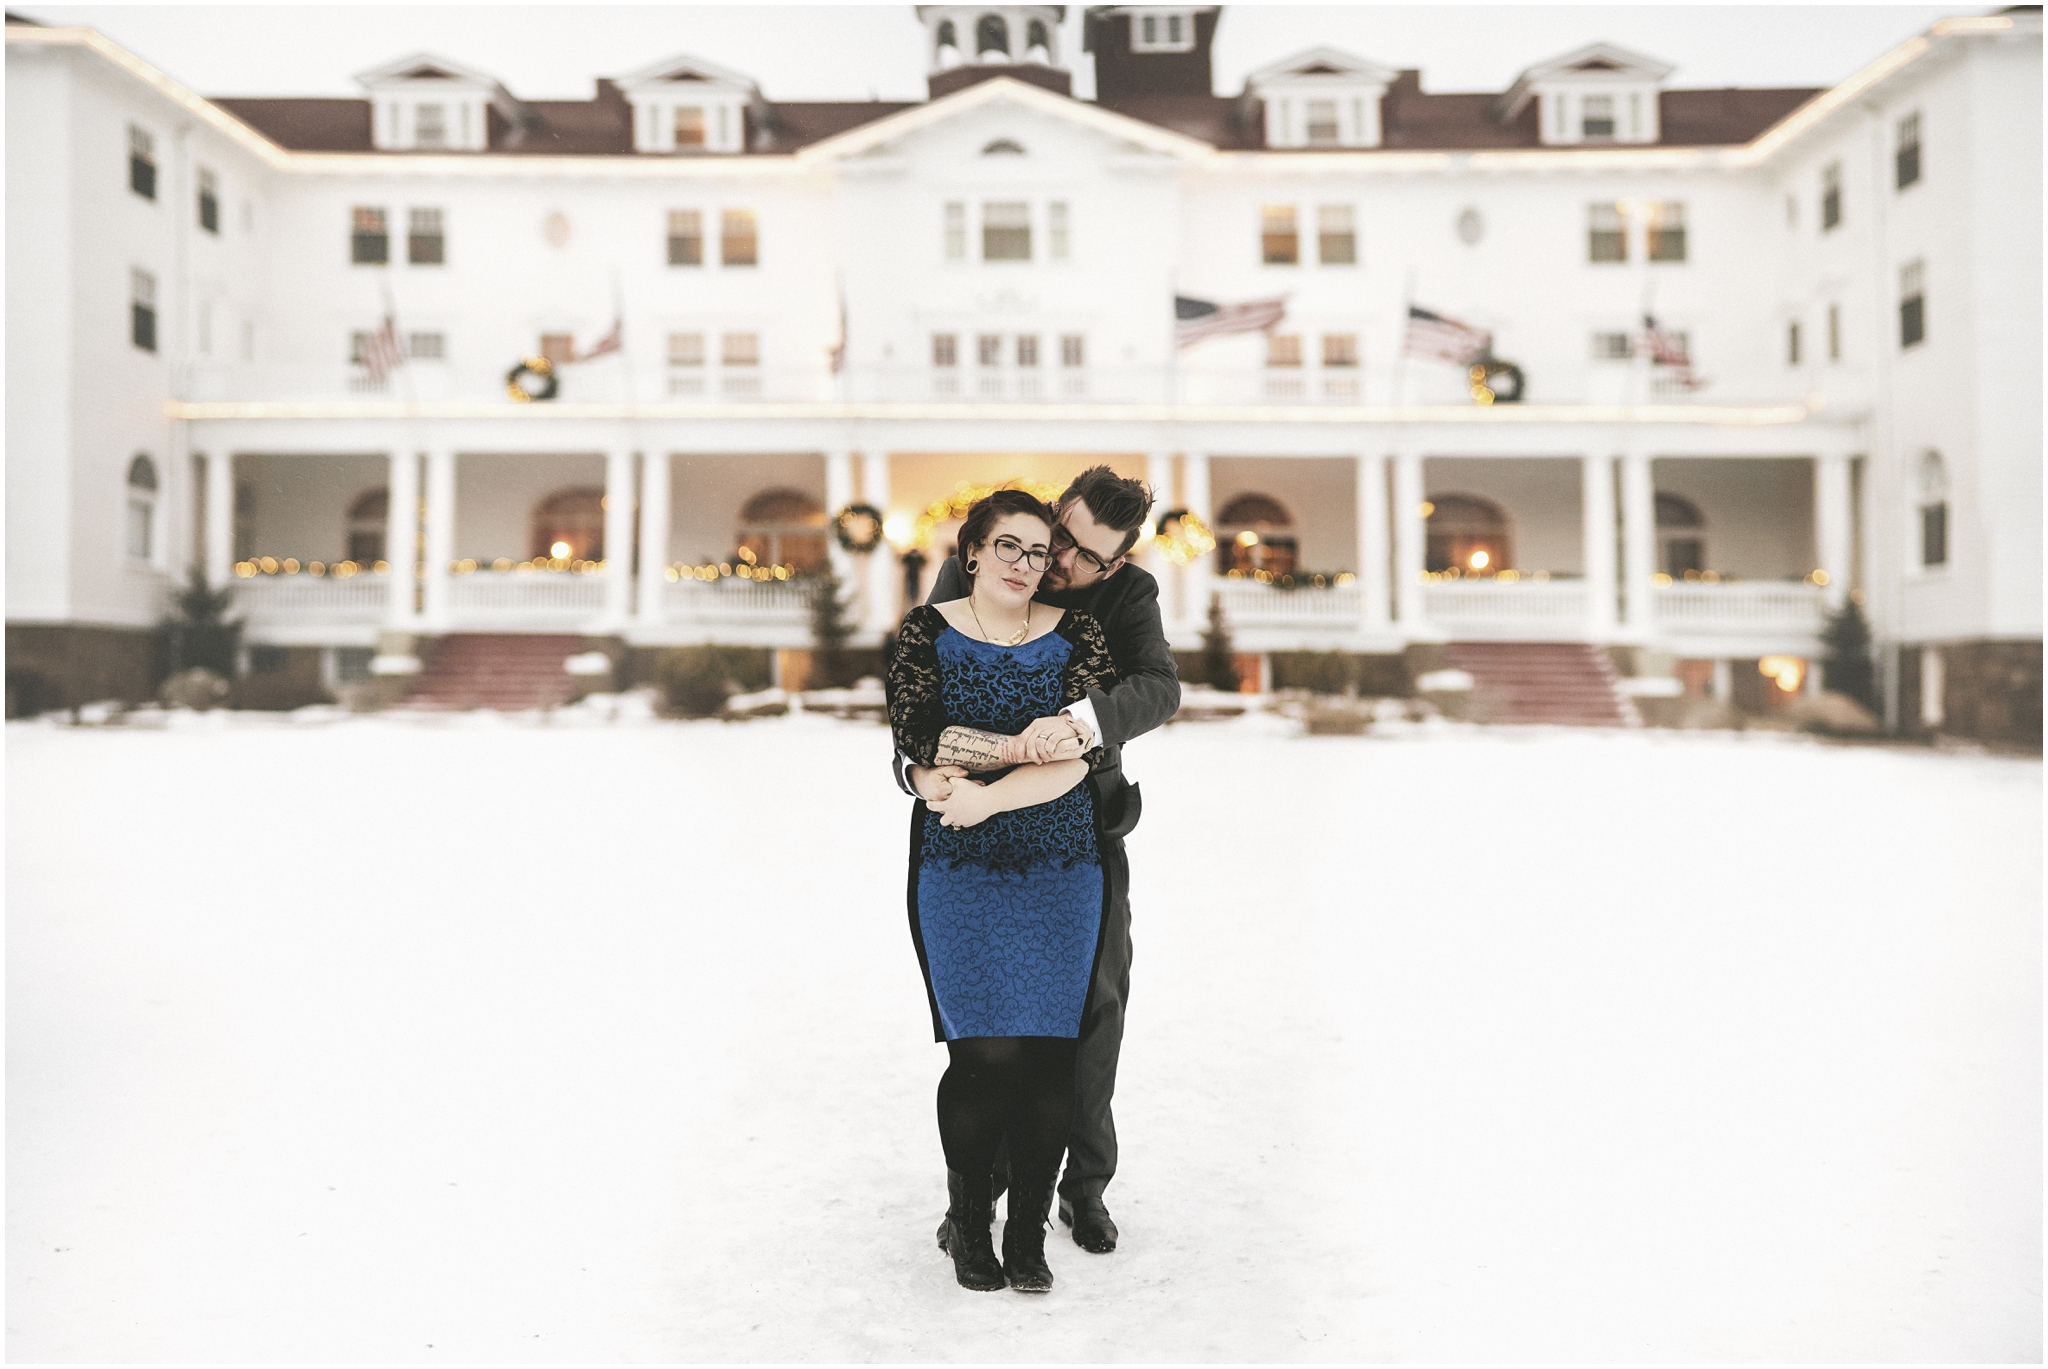 TJ-Romero-Photographer_Stanley-Hotel_Room-217_Handcrafted-Nostagic-Romantic--22.jpg